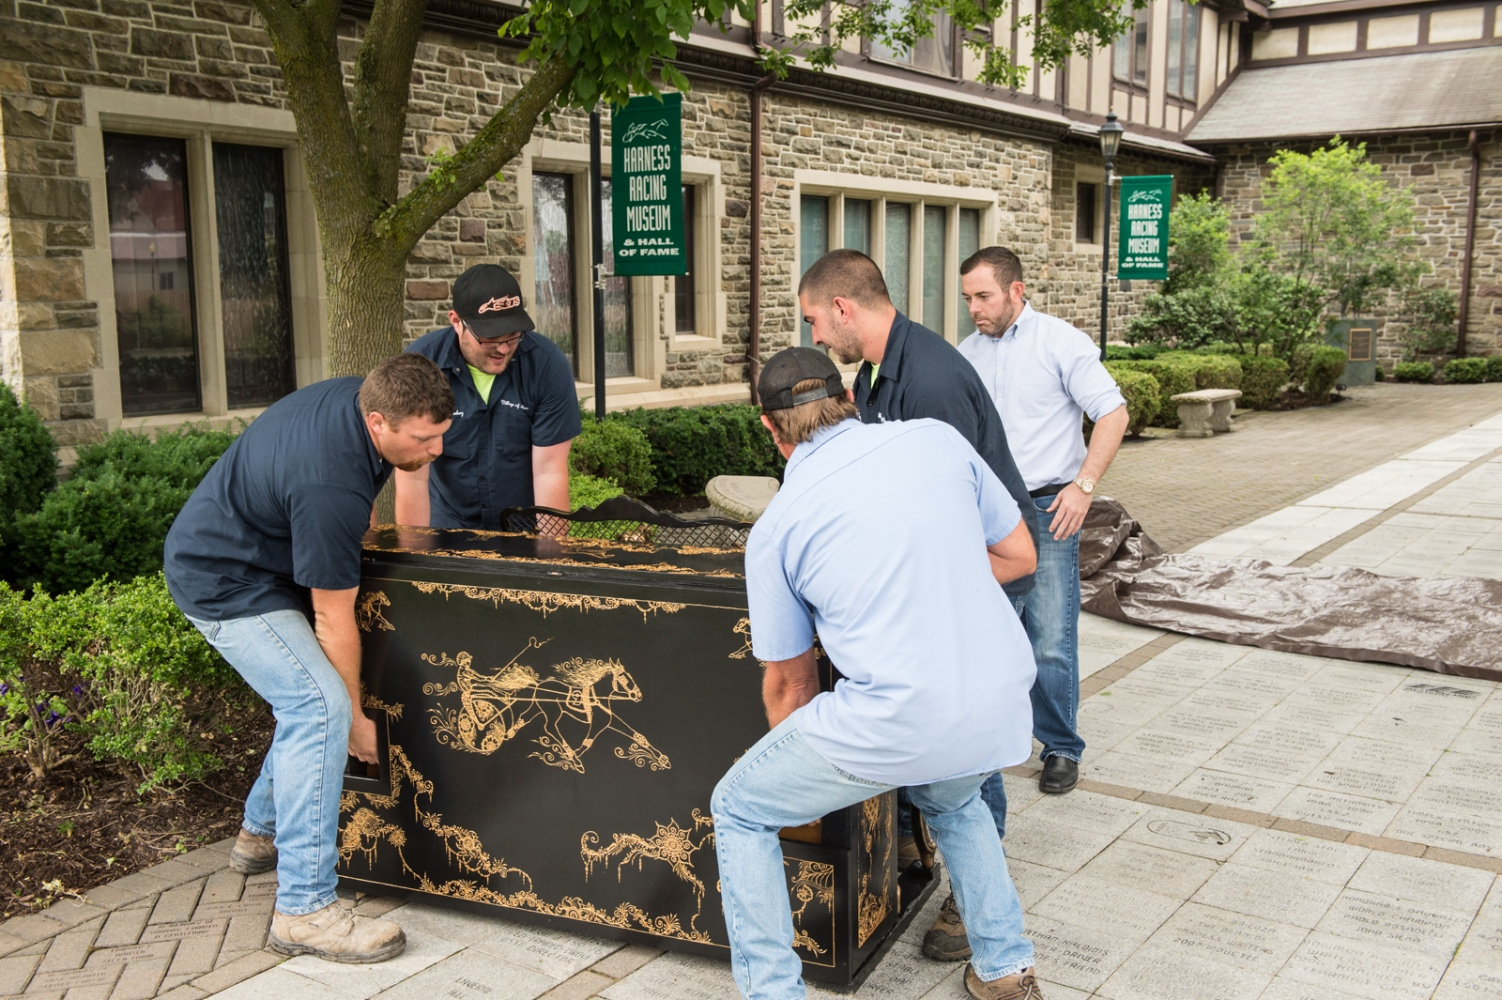 Placing a finished piano in its final location outside the Harness Racing Museum in Goshen.